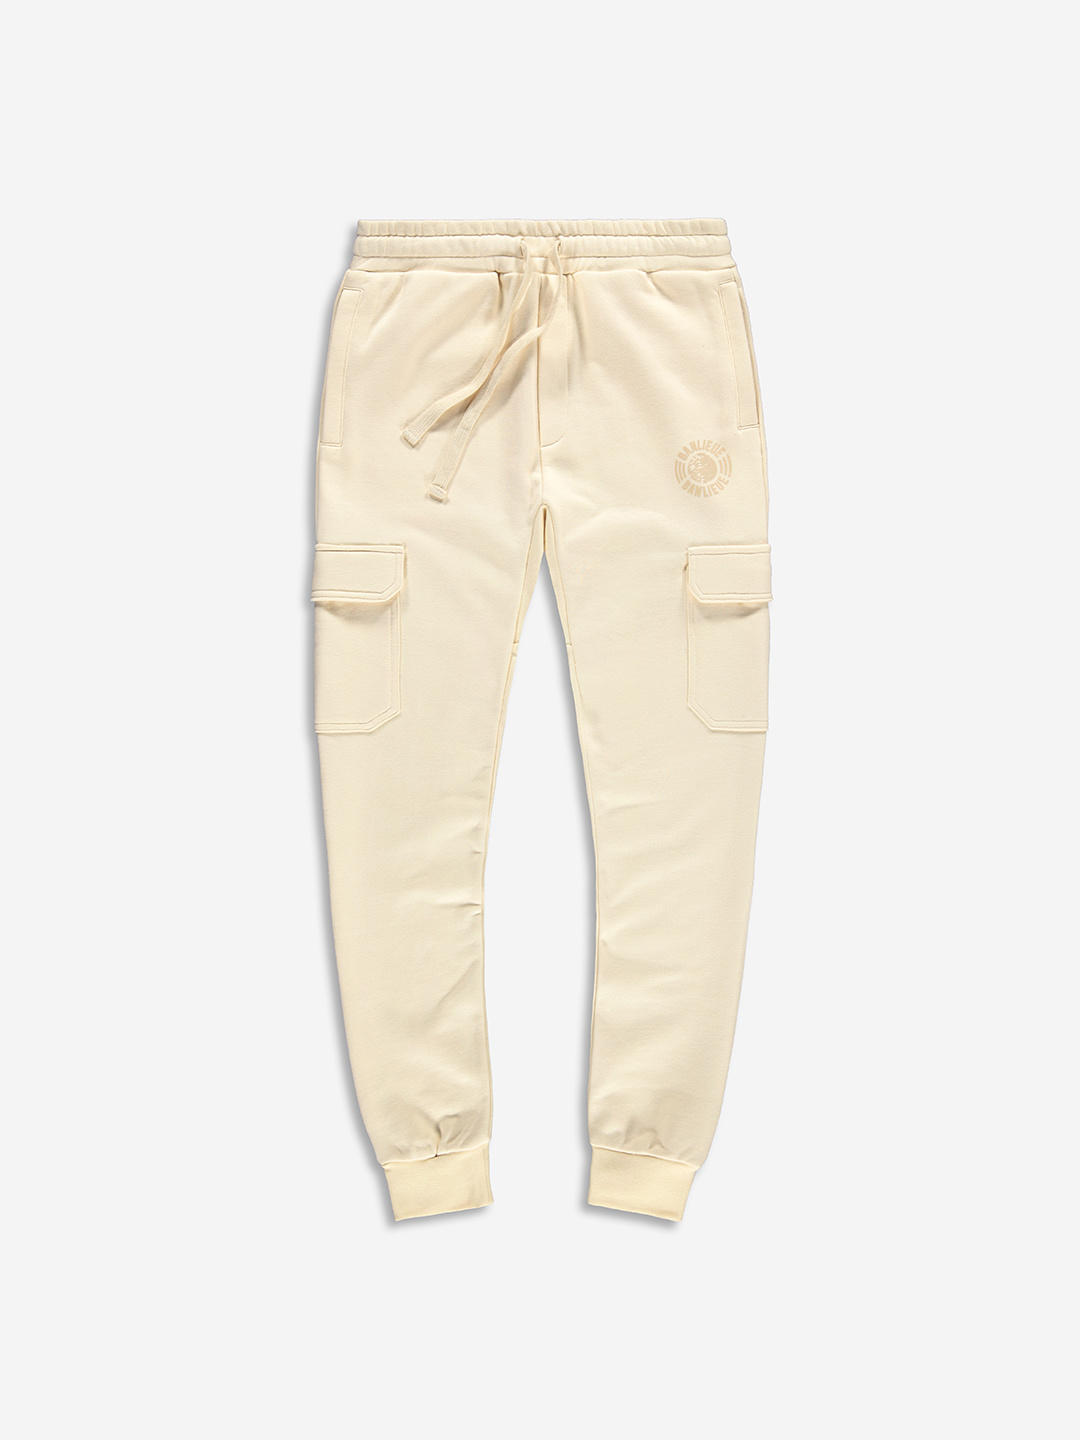 TONAL CARGO SWEATPANTS CREAM WHITE